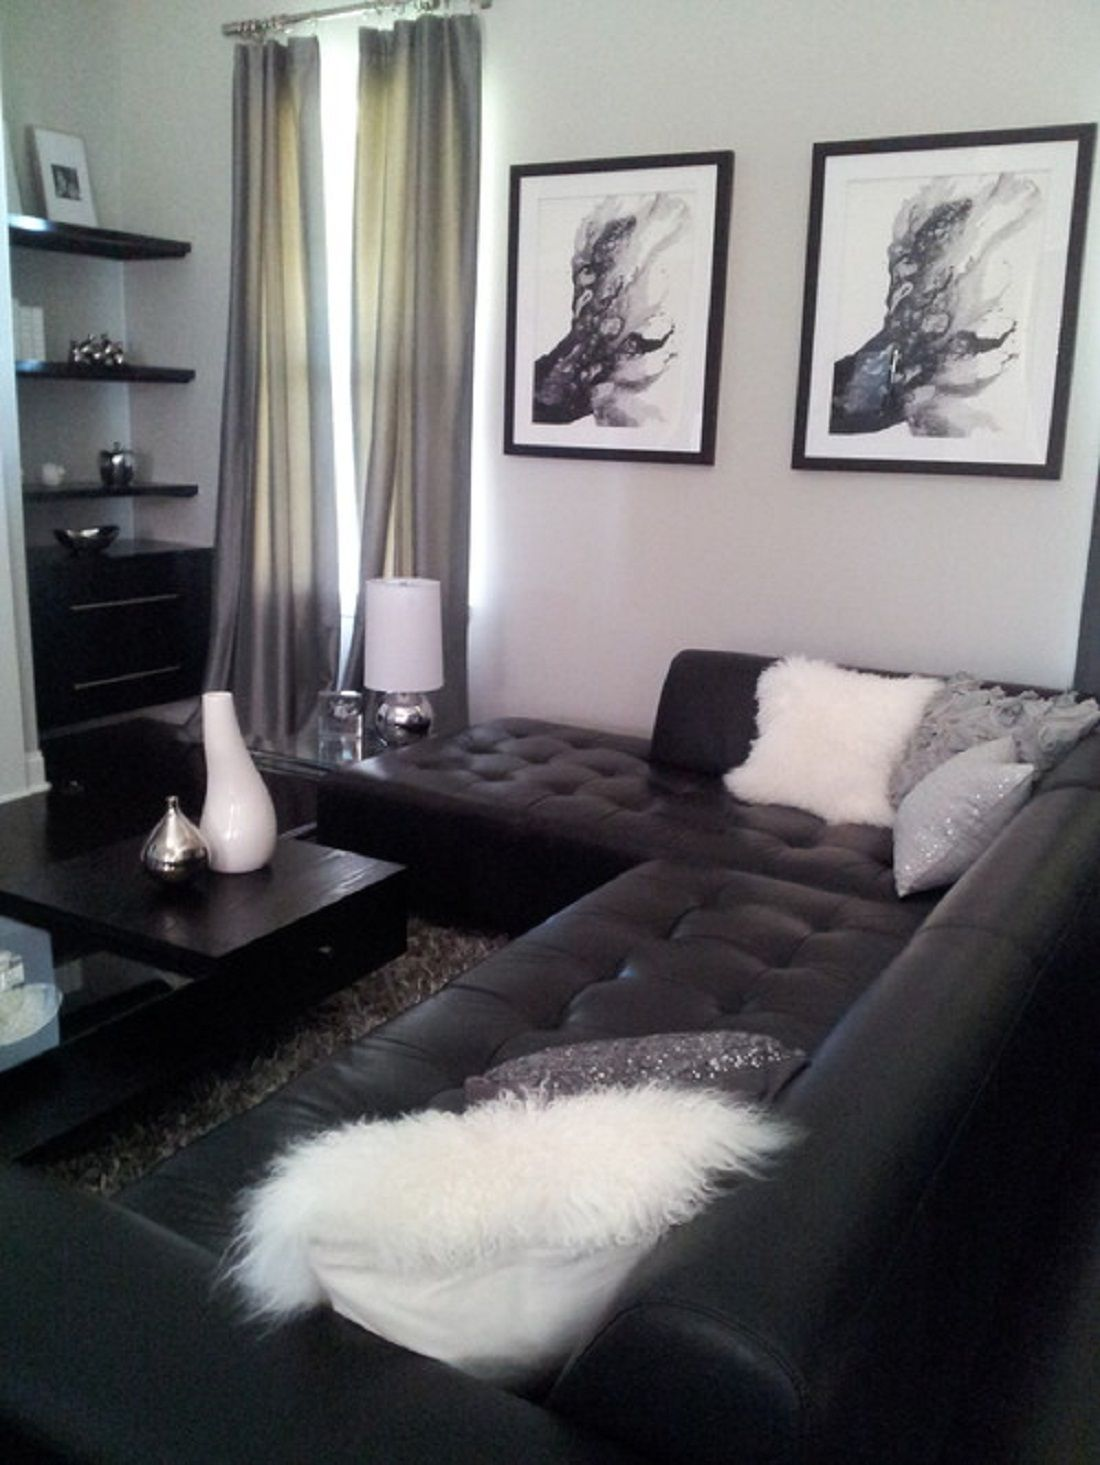 50 inspiring living room ideas - Black And White Living Room Decor